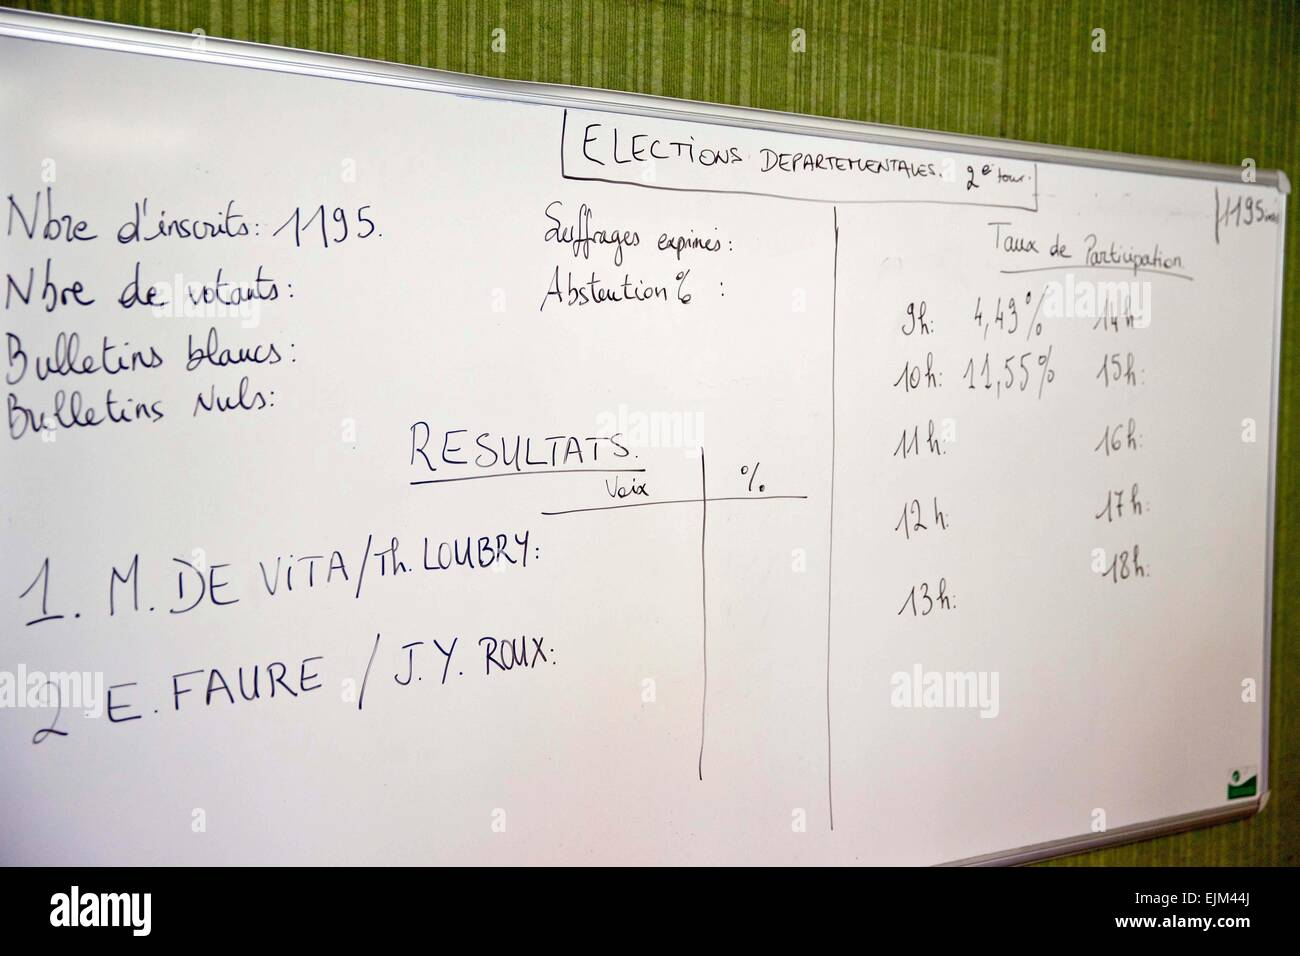 Seyne Les Alpes, France. 29th Mar, 2015. An election results board for the 2nd round of cantonal elections in the - Stock Image